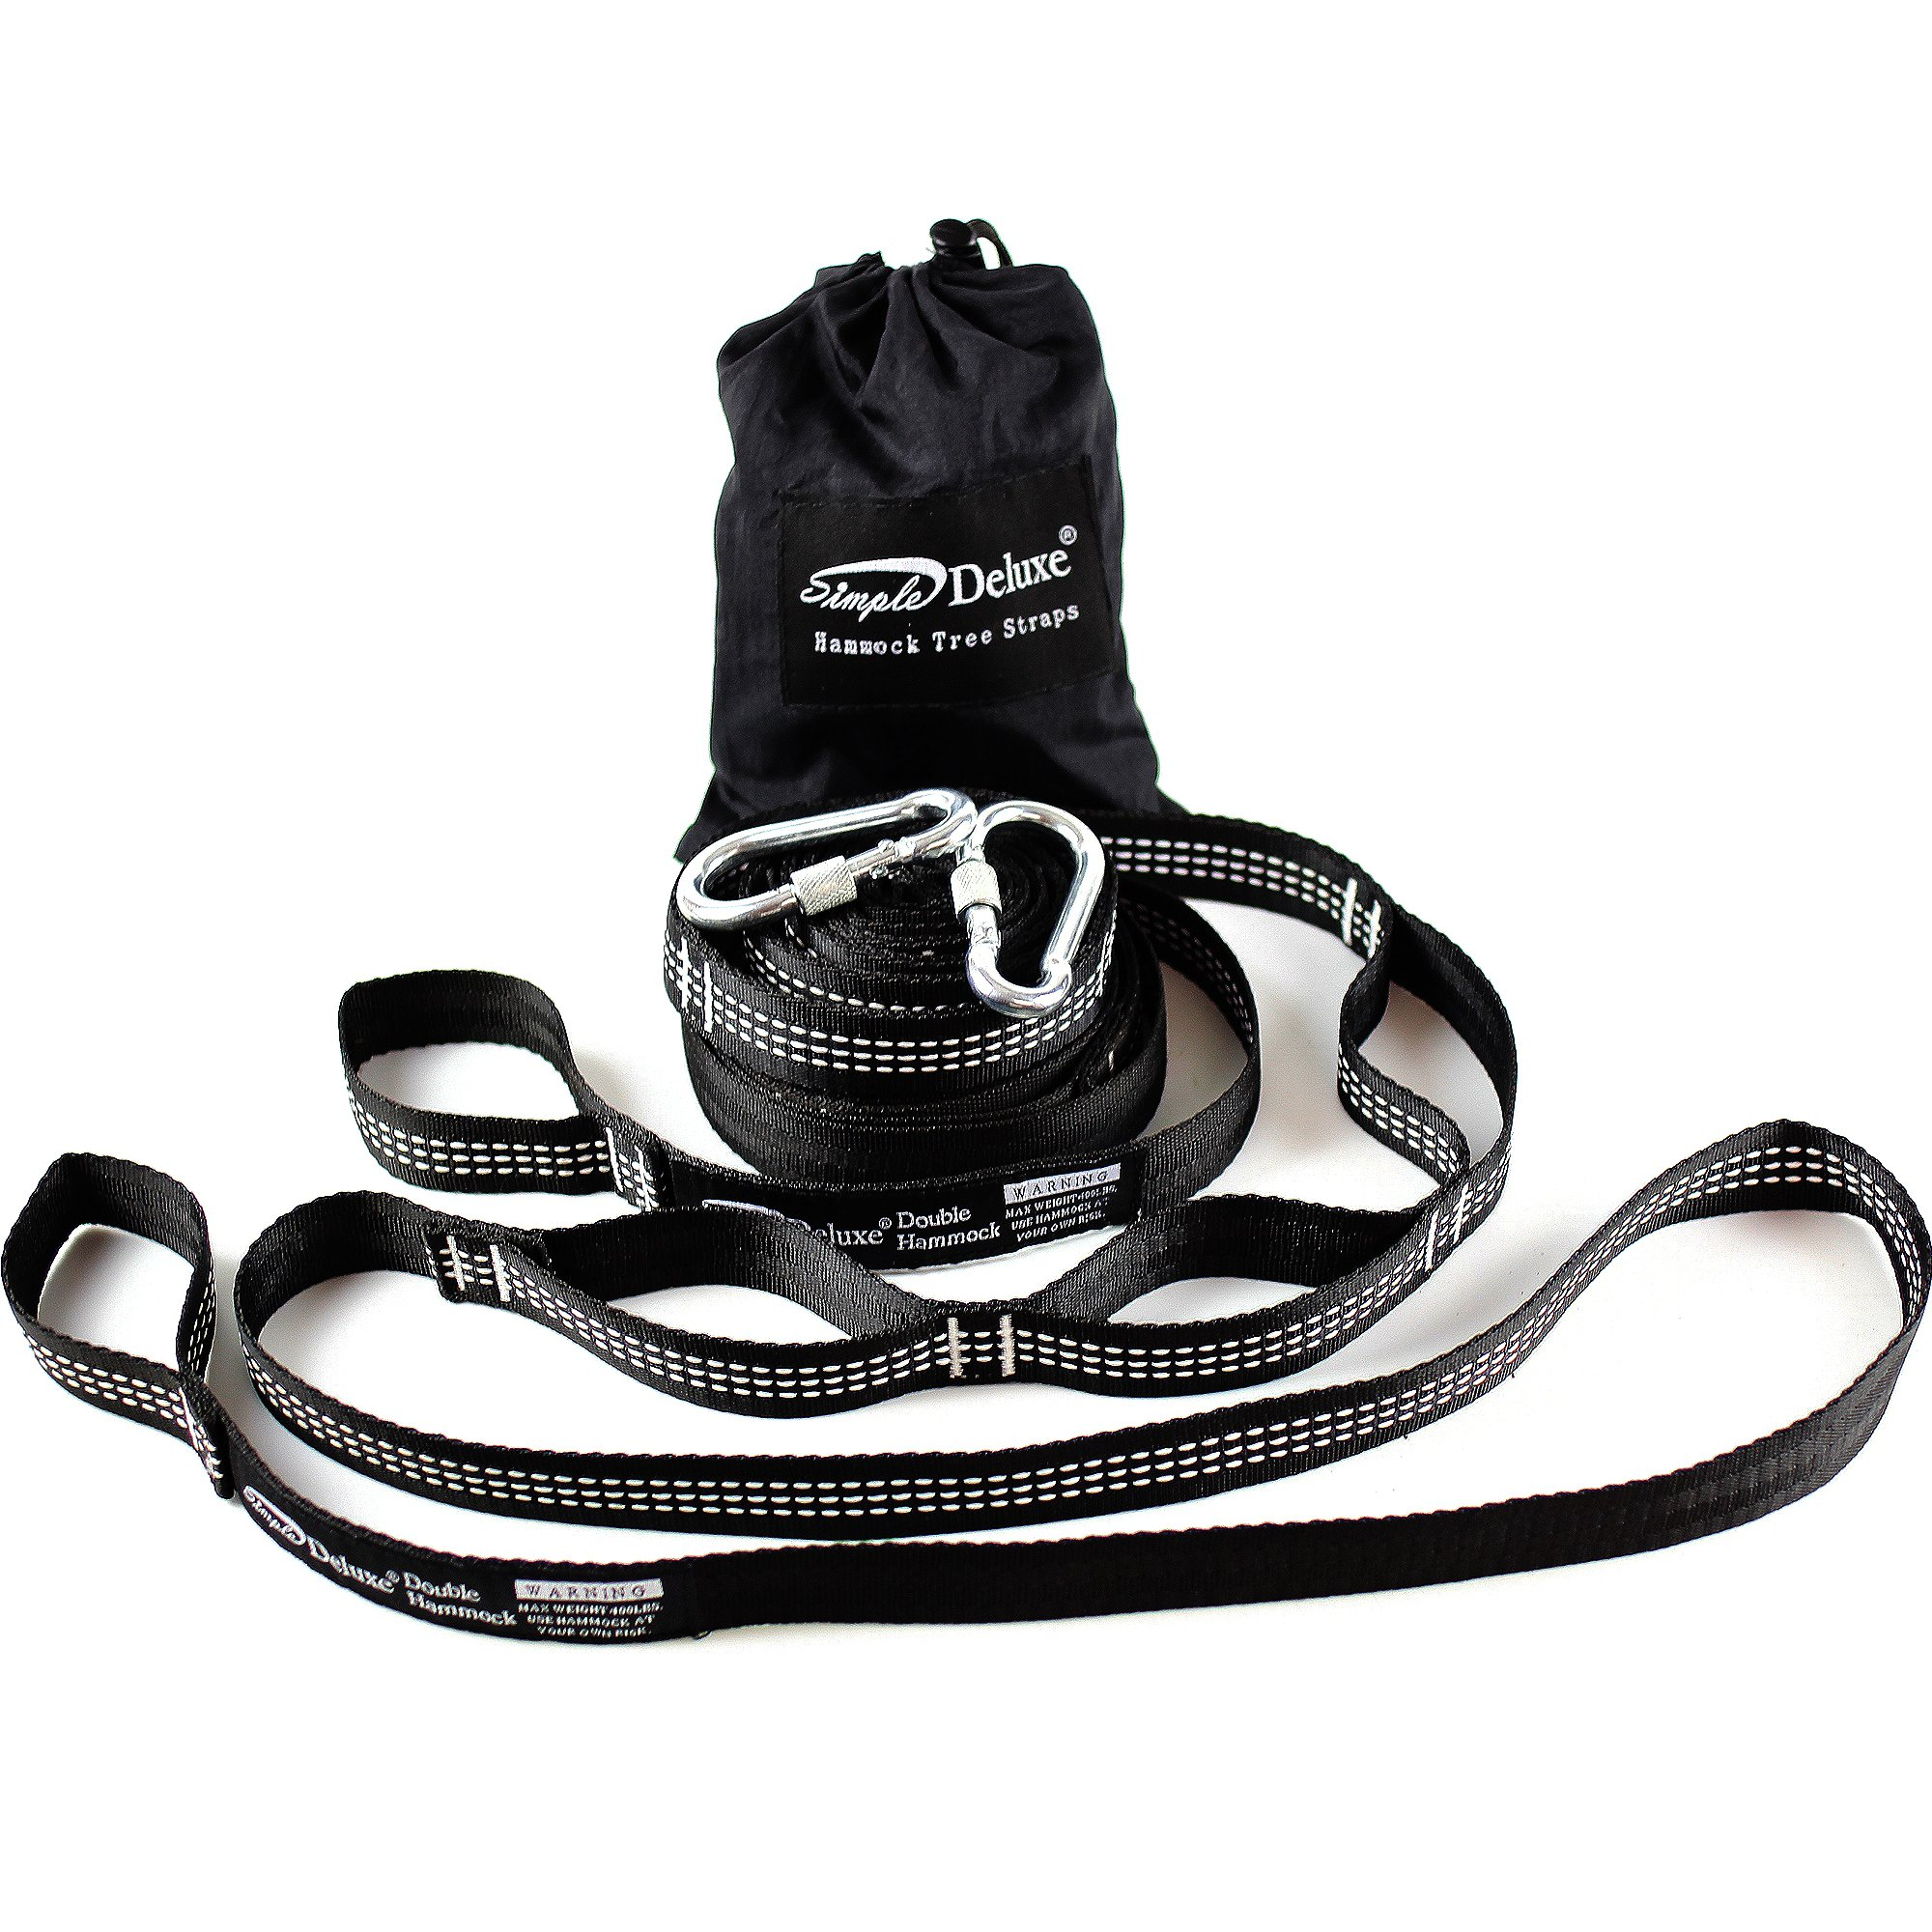 Simple Deluxe 12-Feet Pair of 2000 LBS Heavy Duty Lightweight Portable Hammock Straps with 42 Loops and 2 Metal Locking Carabiners